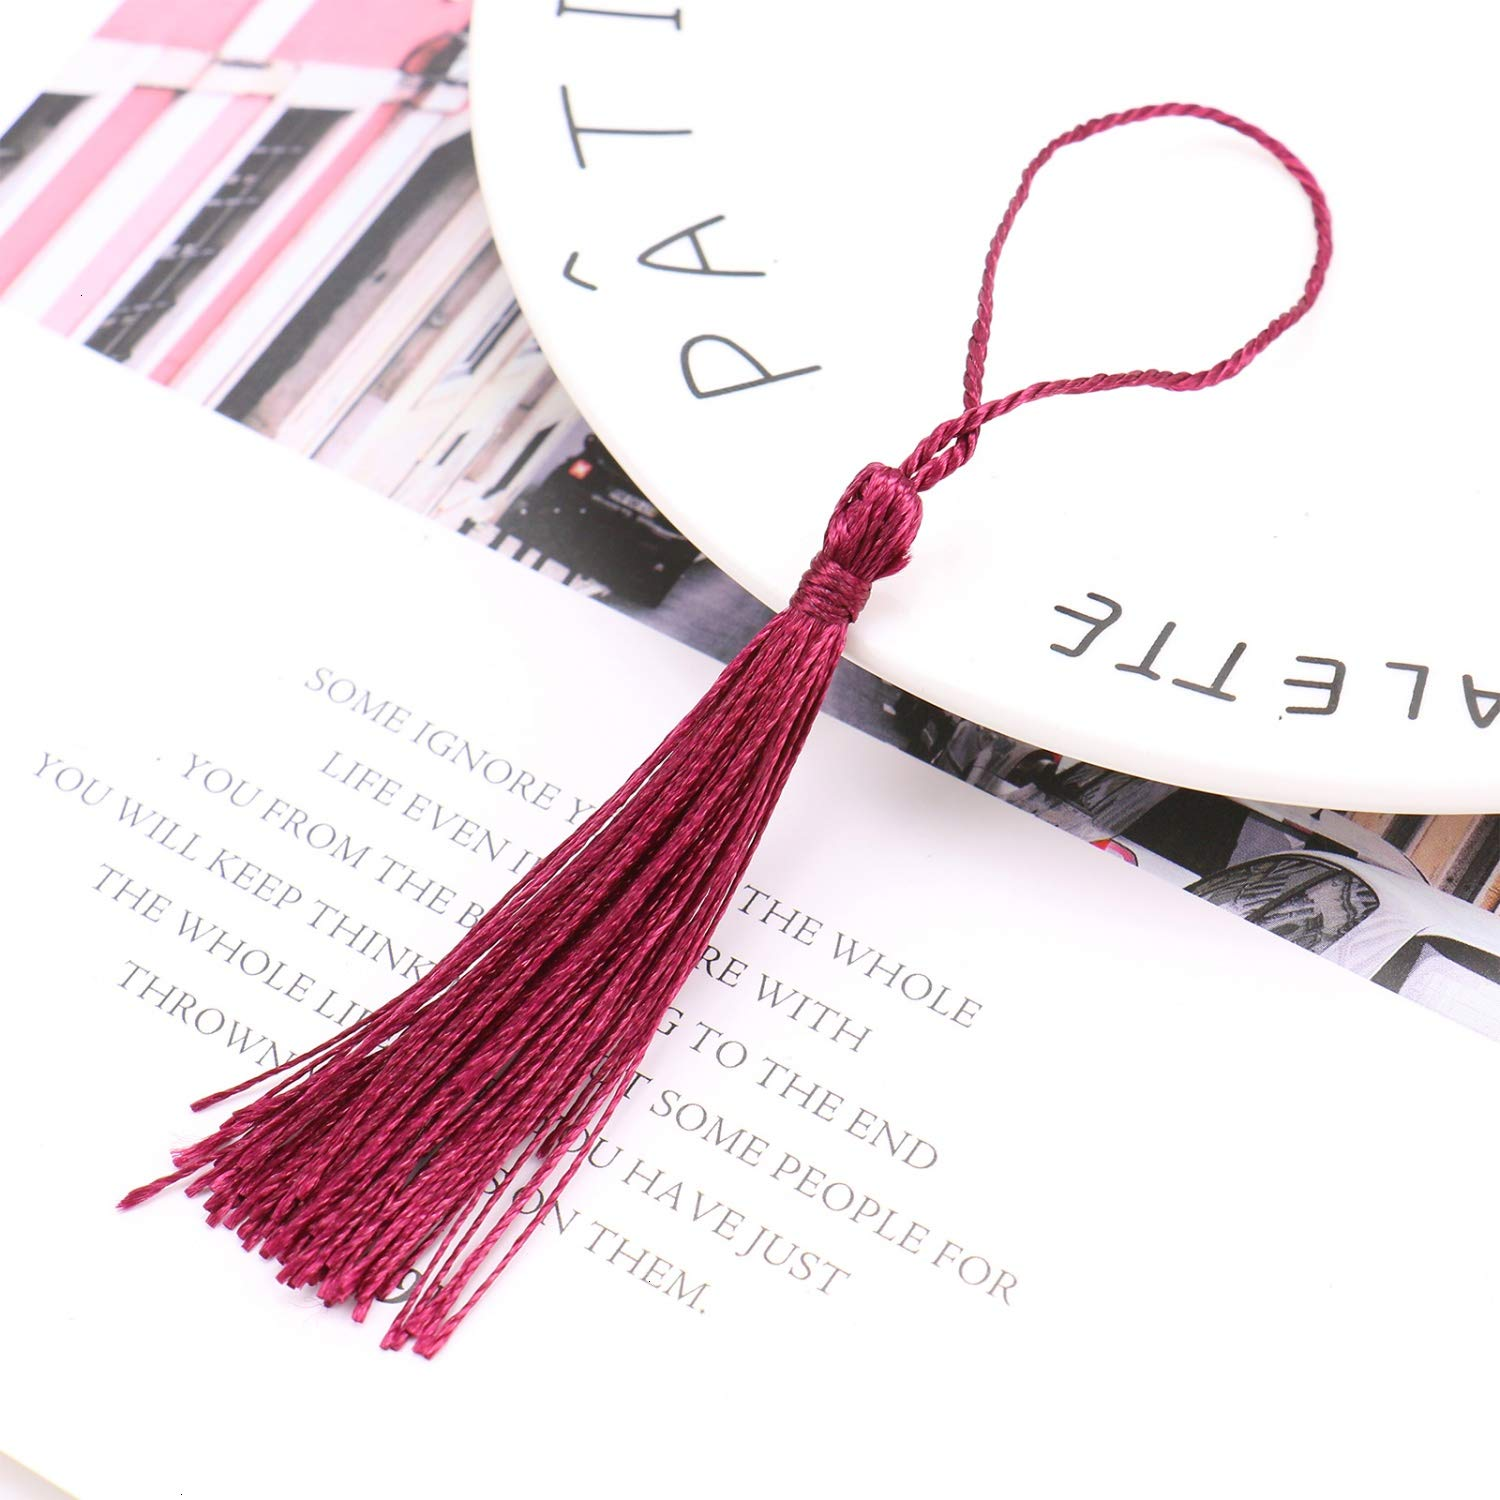 Monrocco Bookmark Tassels Burgundy 150 PCS Silky Floss Bookmark Tassels with Cord Loop for Jewelry Making DIY Projects Bookmarks